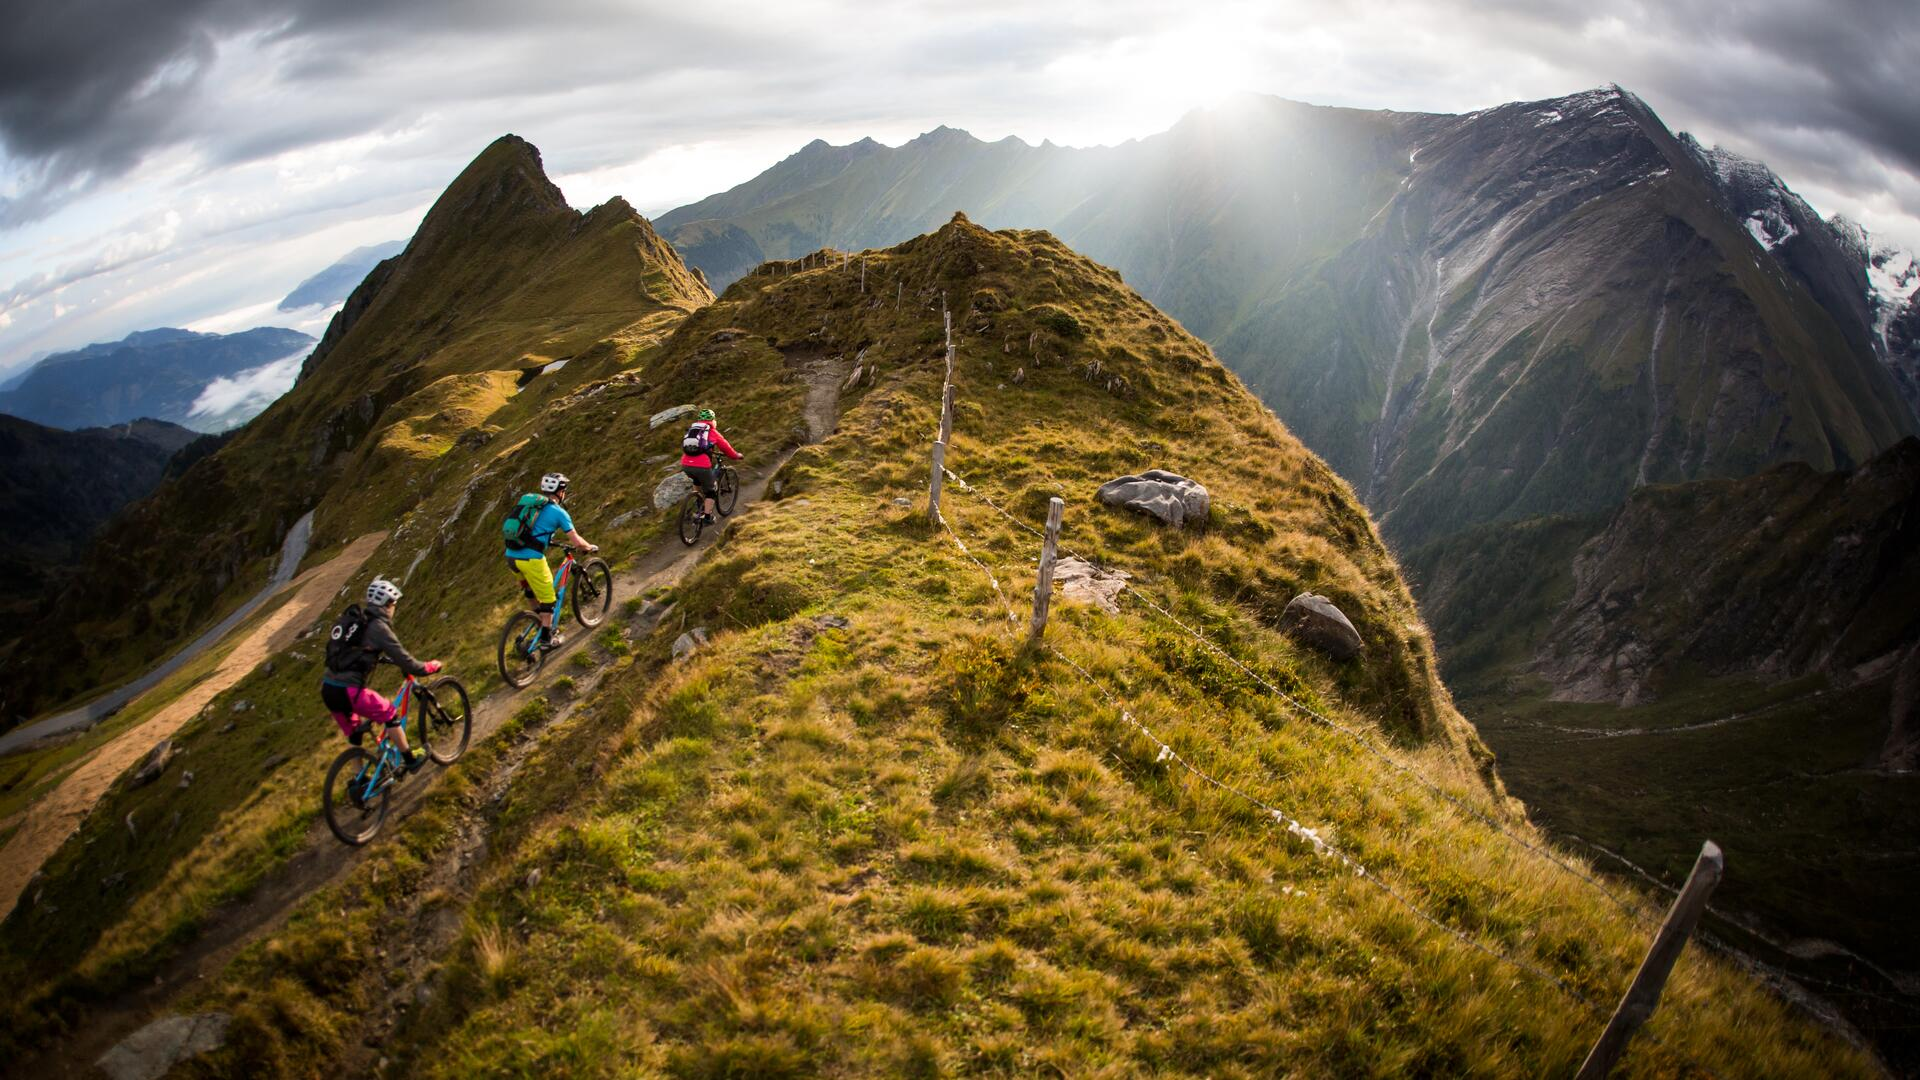 From high alpine to natural, three trails demand stamina from freeriders | © SalzburgerLand - David Schultheiss for WOM Medien